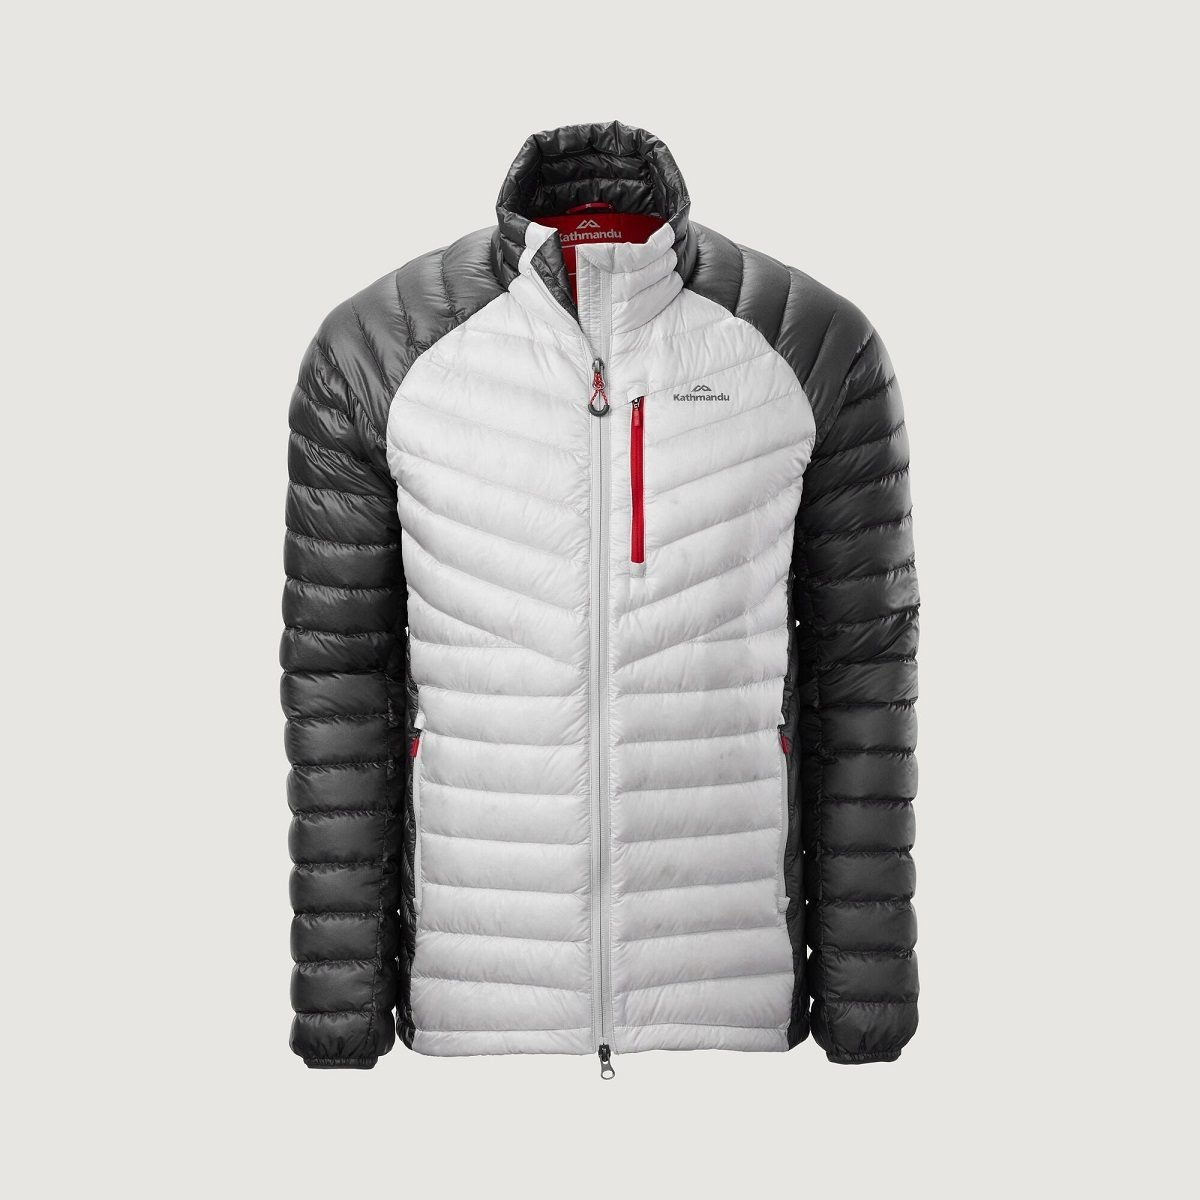 Kathmandu is a great brand to look for if you're in the market for an affordable men's puffer jacket.